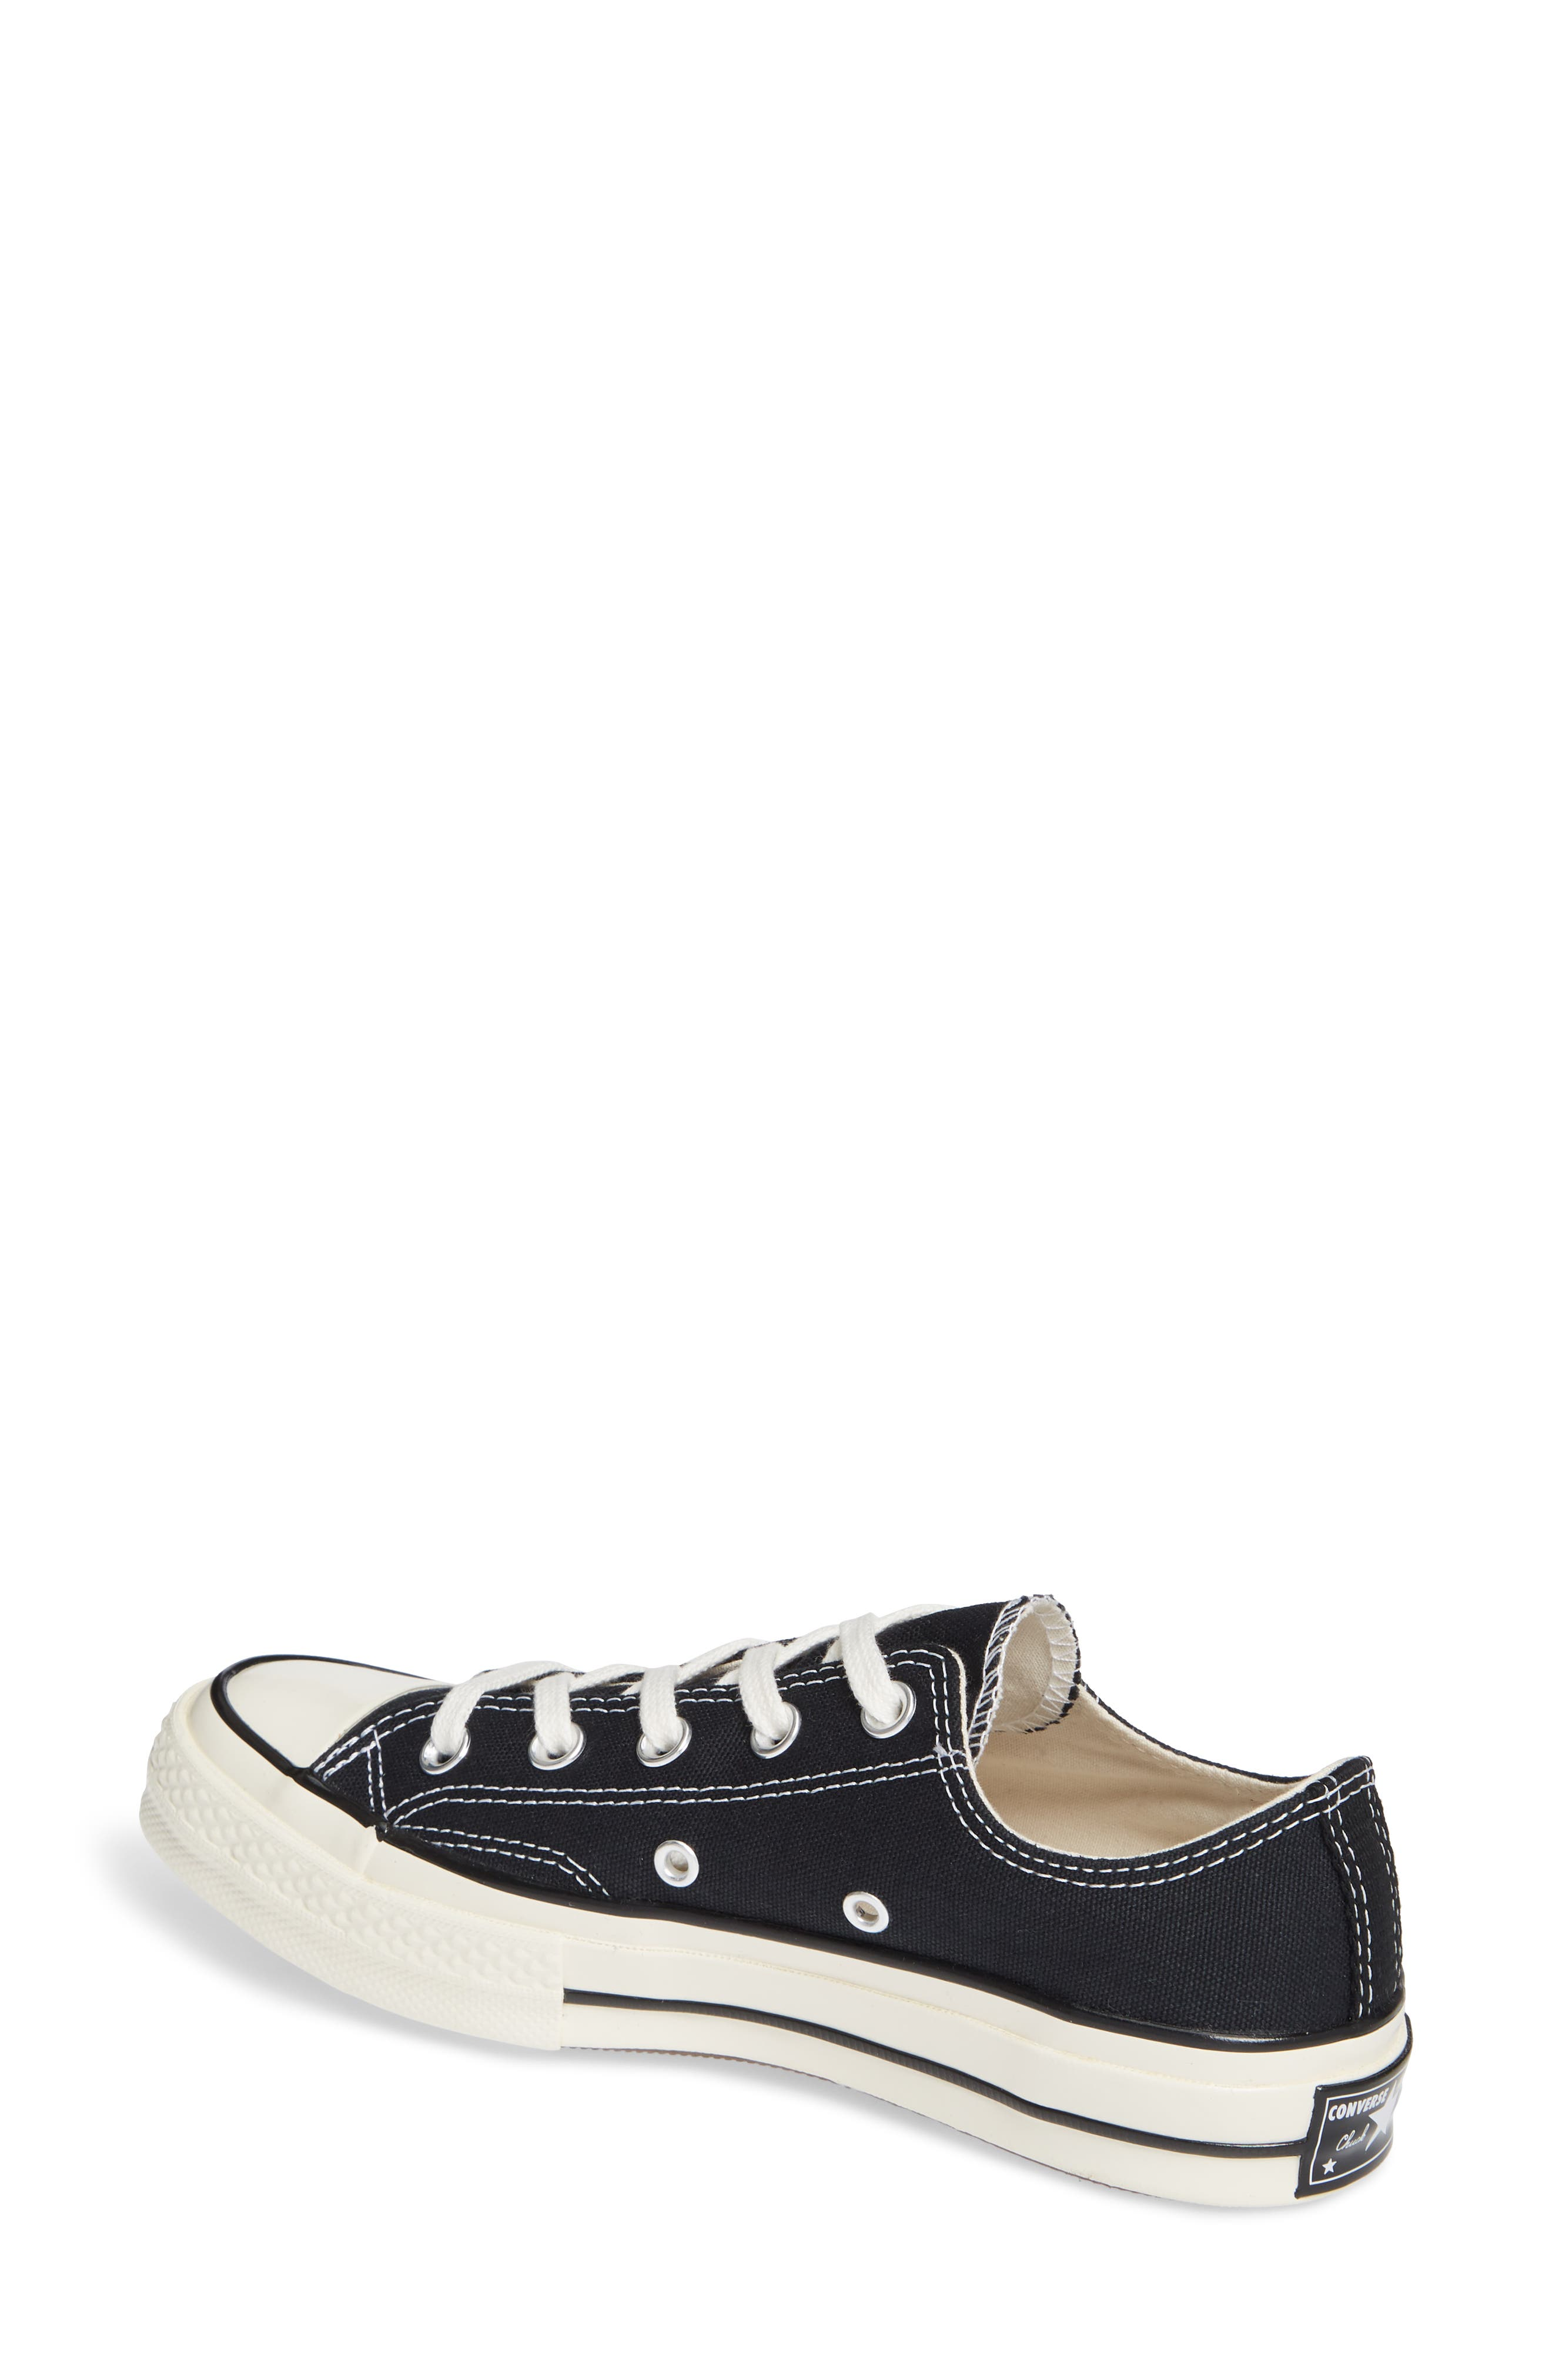 CONVERSE, Chuck Taylor<sup>®</sup> All Star<sup>®</sup> Chuck 70 Ox Sneaker, Alternate thumbnail 2, color, BLACK/ BLACK/ EGRET